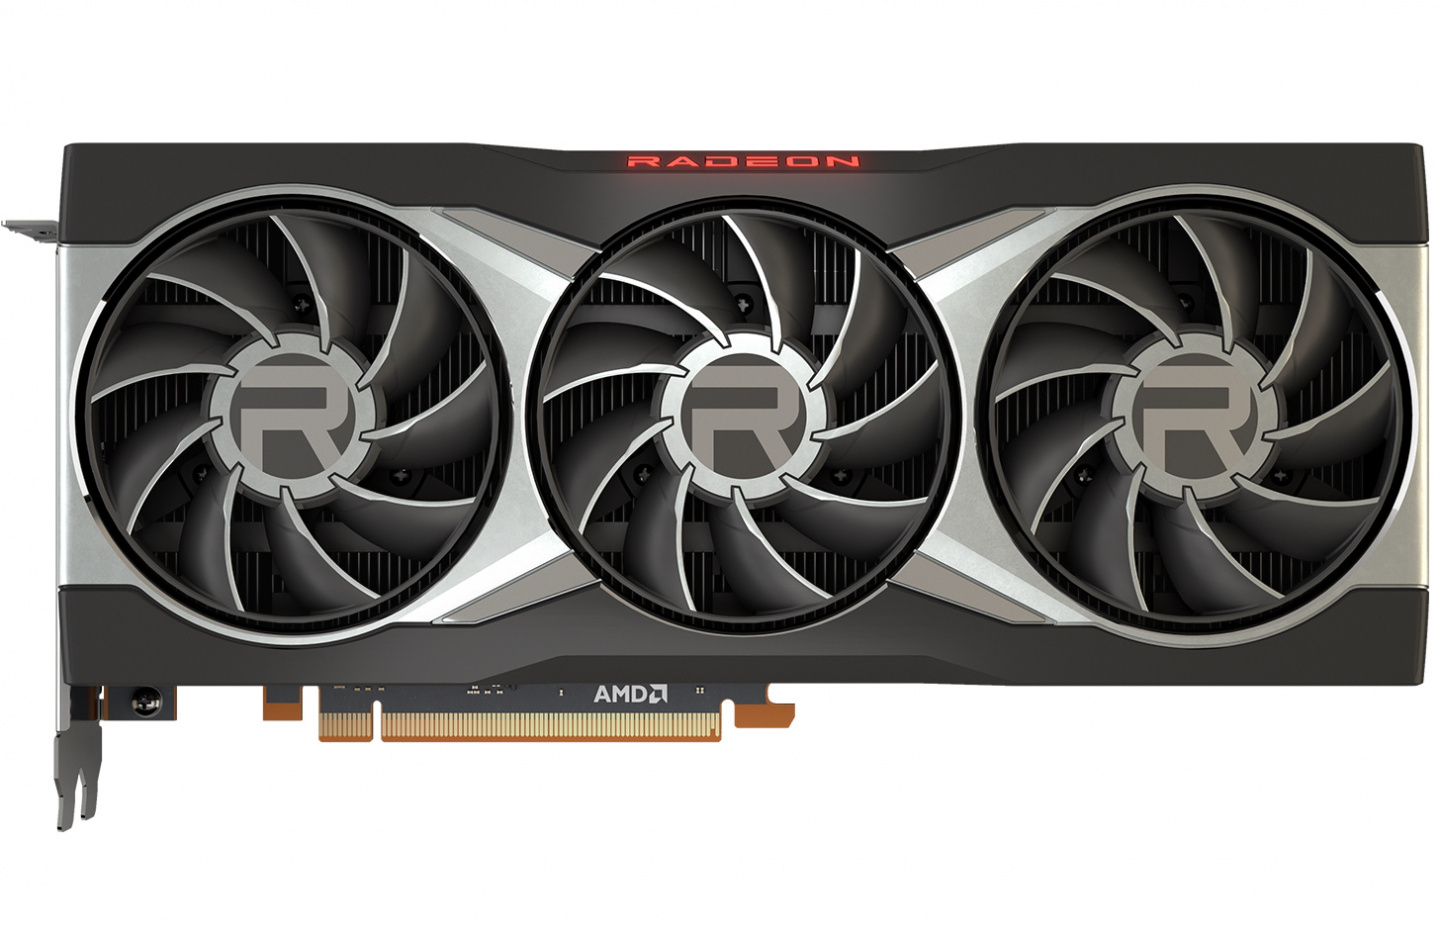 Picture of Radeon RX 6800 XT Graphics Card Cooler